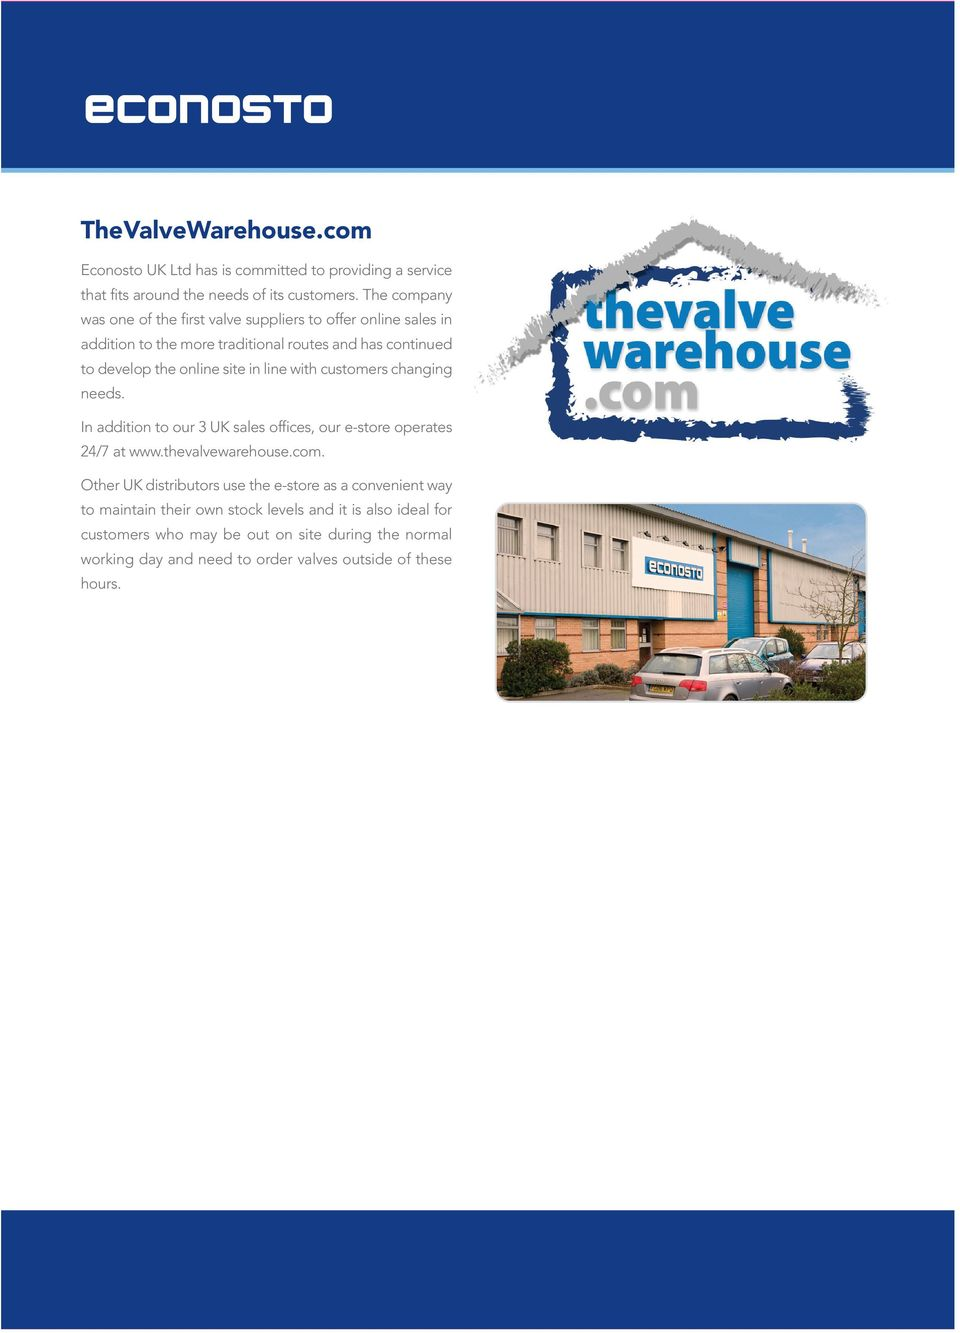 line with customers changing needs. In addition to our 3 UK sales offices, our e-store operates 24/7 at www.thevalvewarehouse.com.